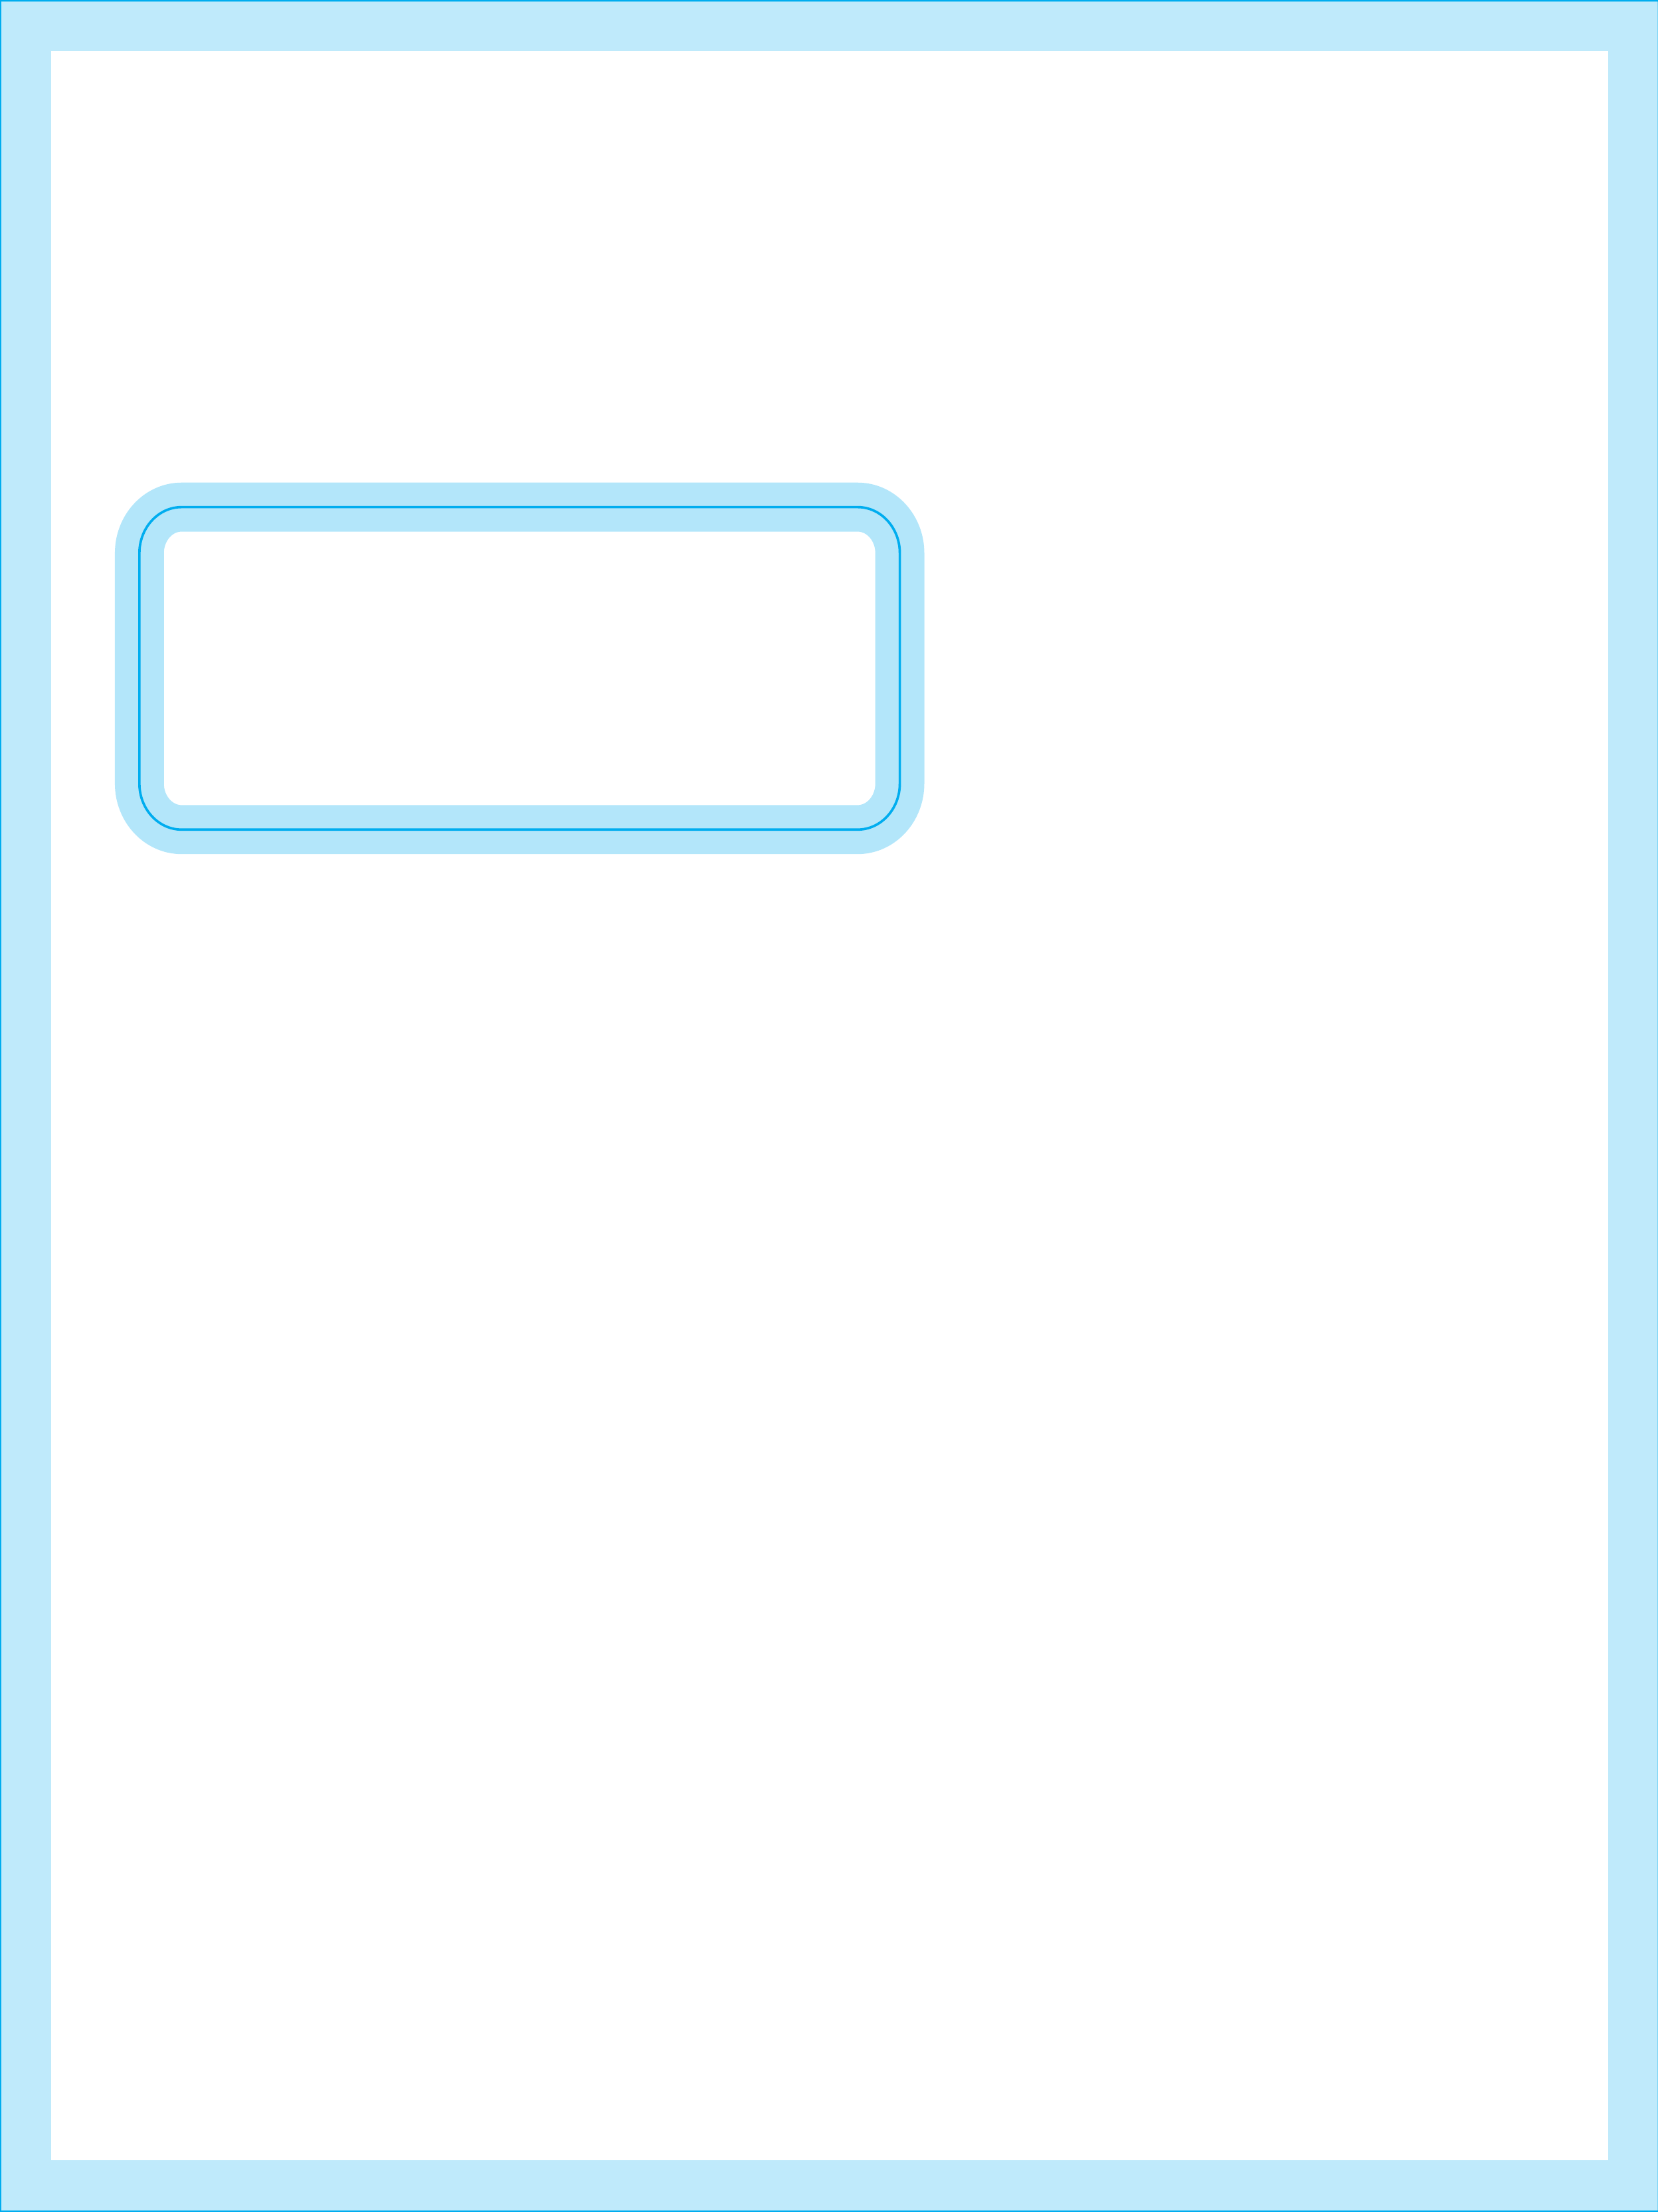 Window Envelopes X Front Free Download - Window envelope template